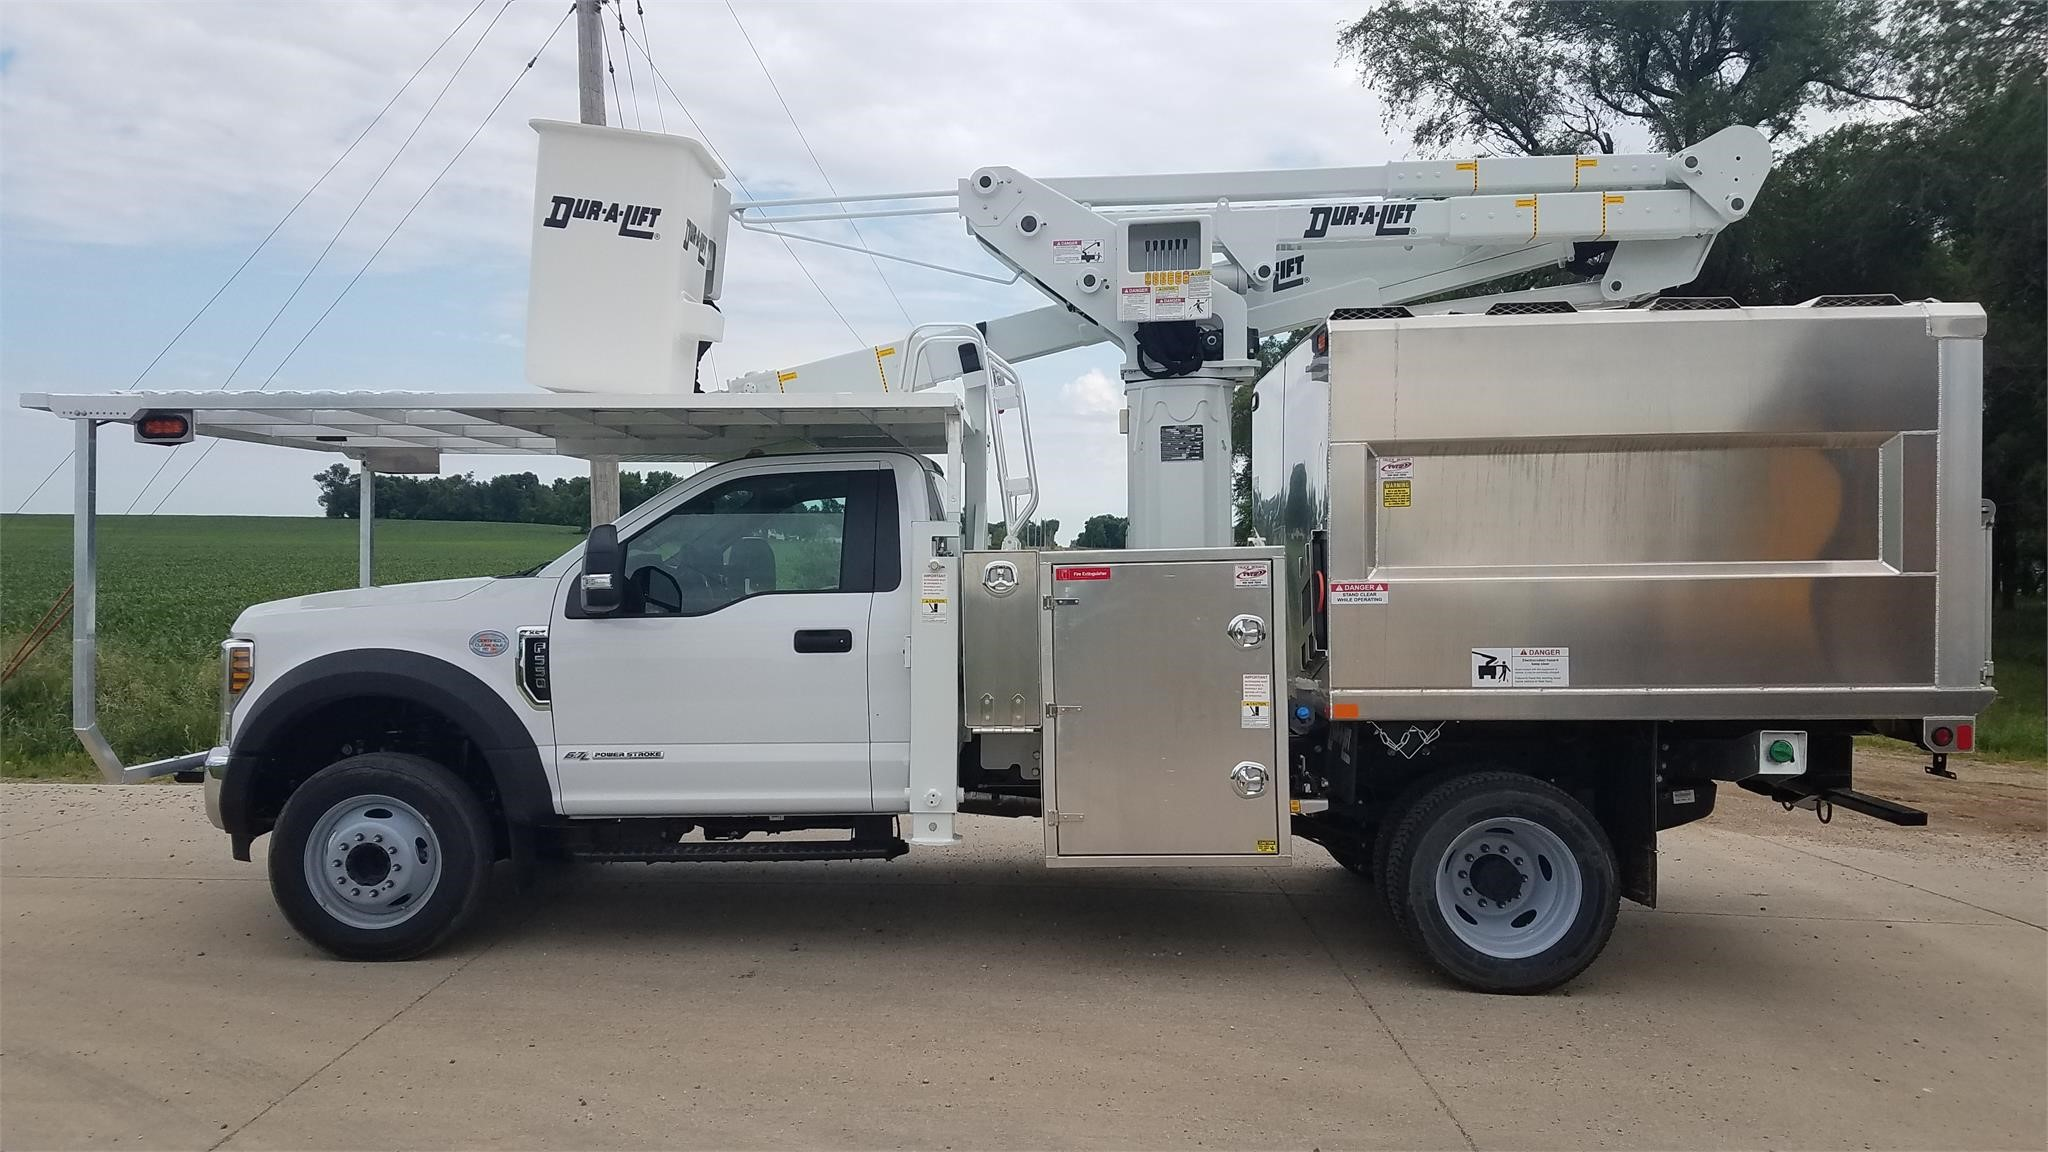 F550 For Sale >> 2019 Duralift Dtax45 Mounted On 2019 Ford F550 For Sale In Hodgkins Illinois